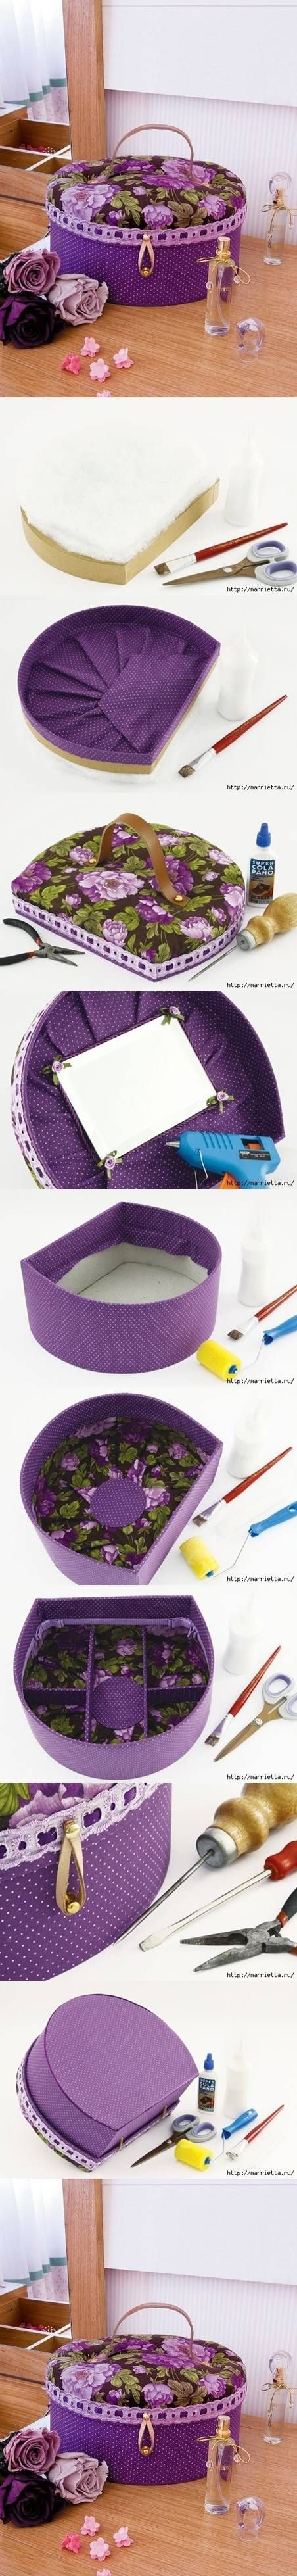 DIY Cute Makeup Box DIY Cute Makeup Box by diyforever